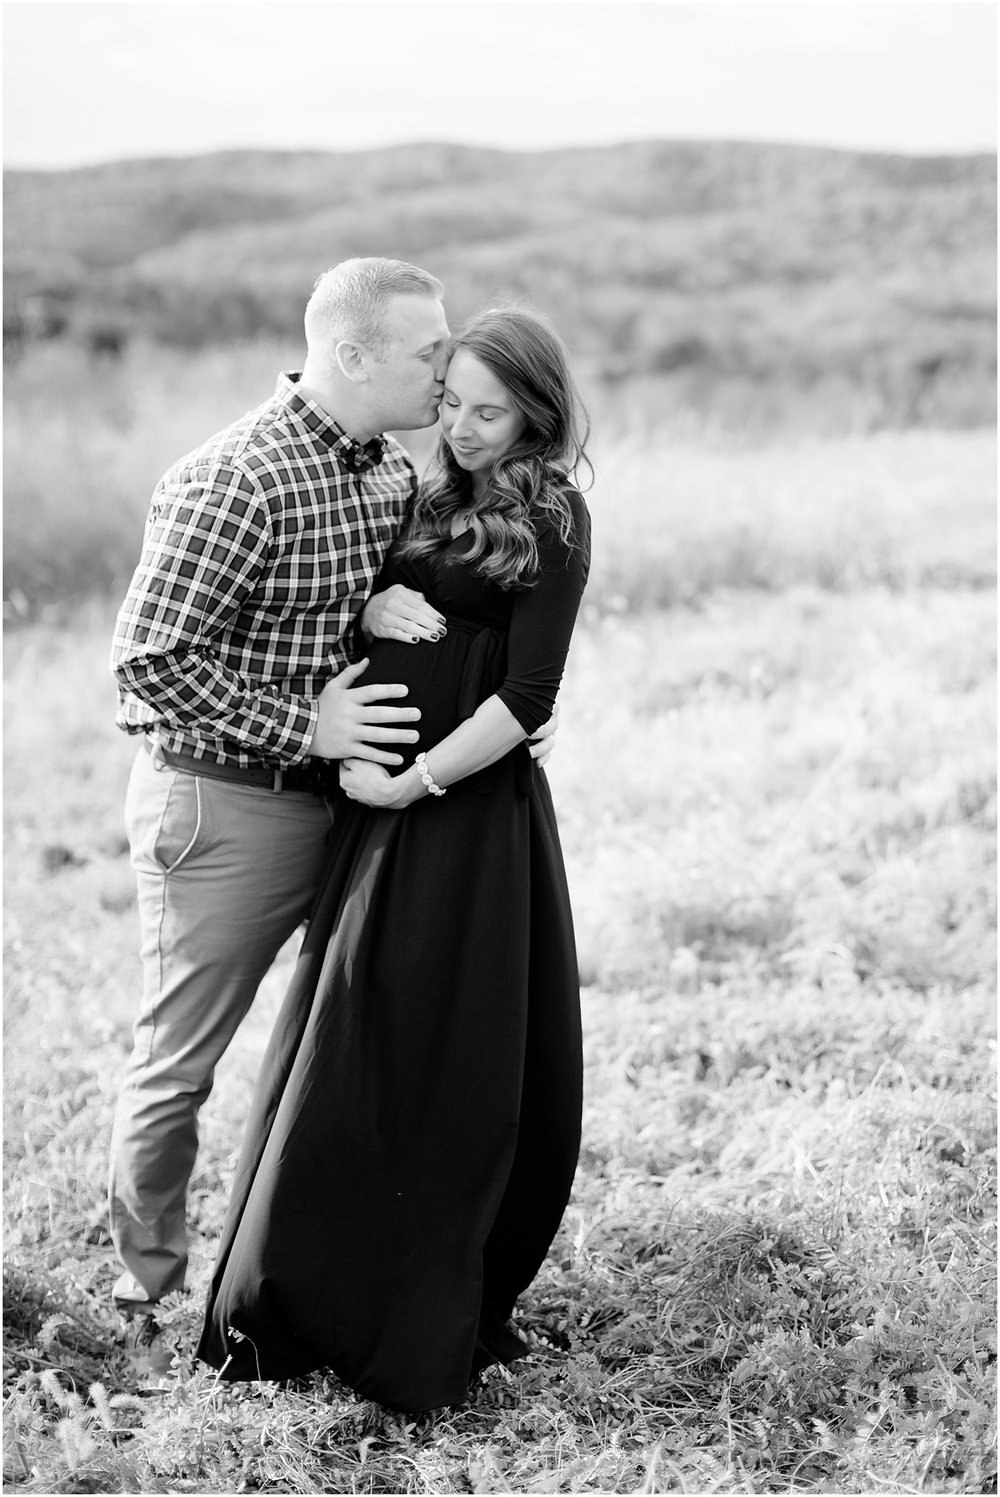 Ashley Powell Photography Hannah Fallion Maternity Blog Images_0009.jpg